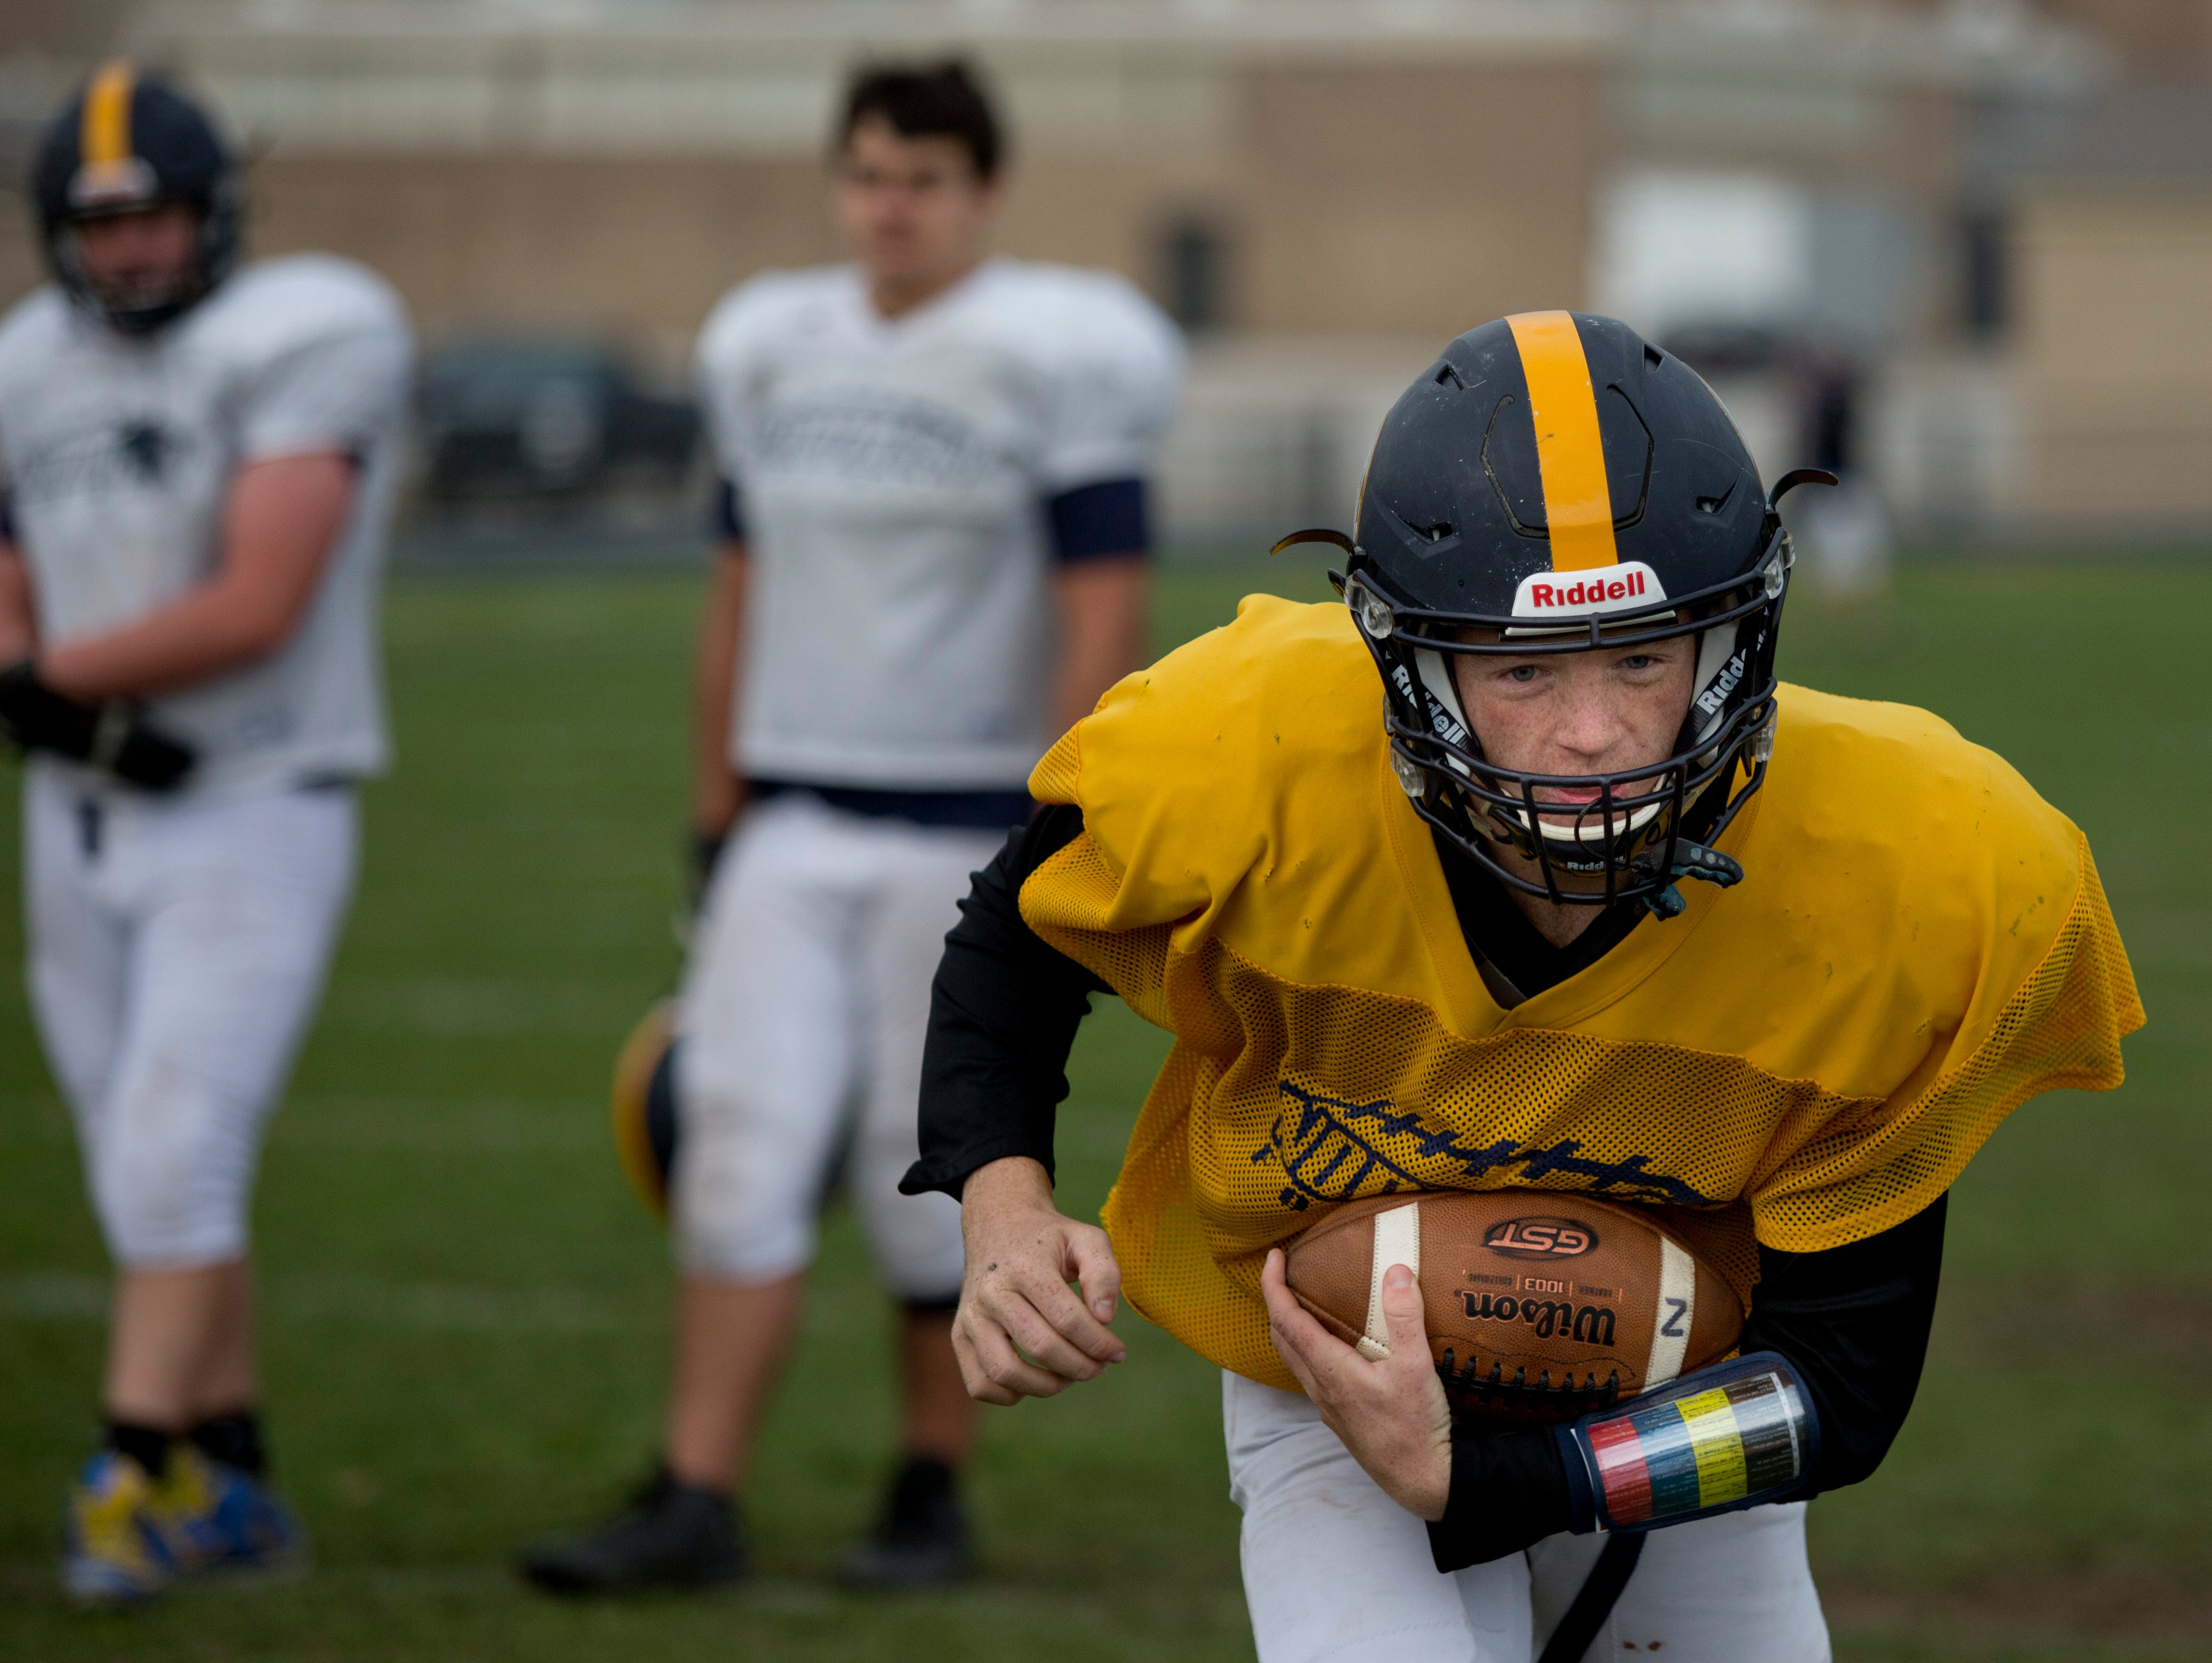 Junior Billy Fealko runs the ball during practice Wednesday, October 21, 2015 at Port Huron Northern High School.